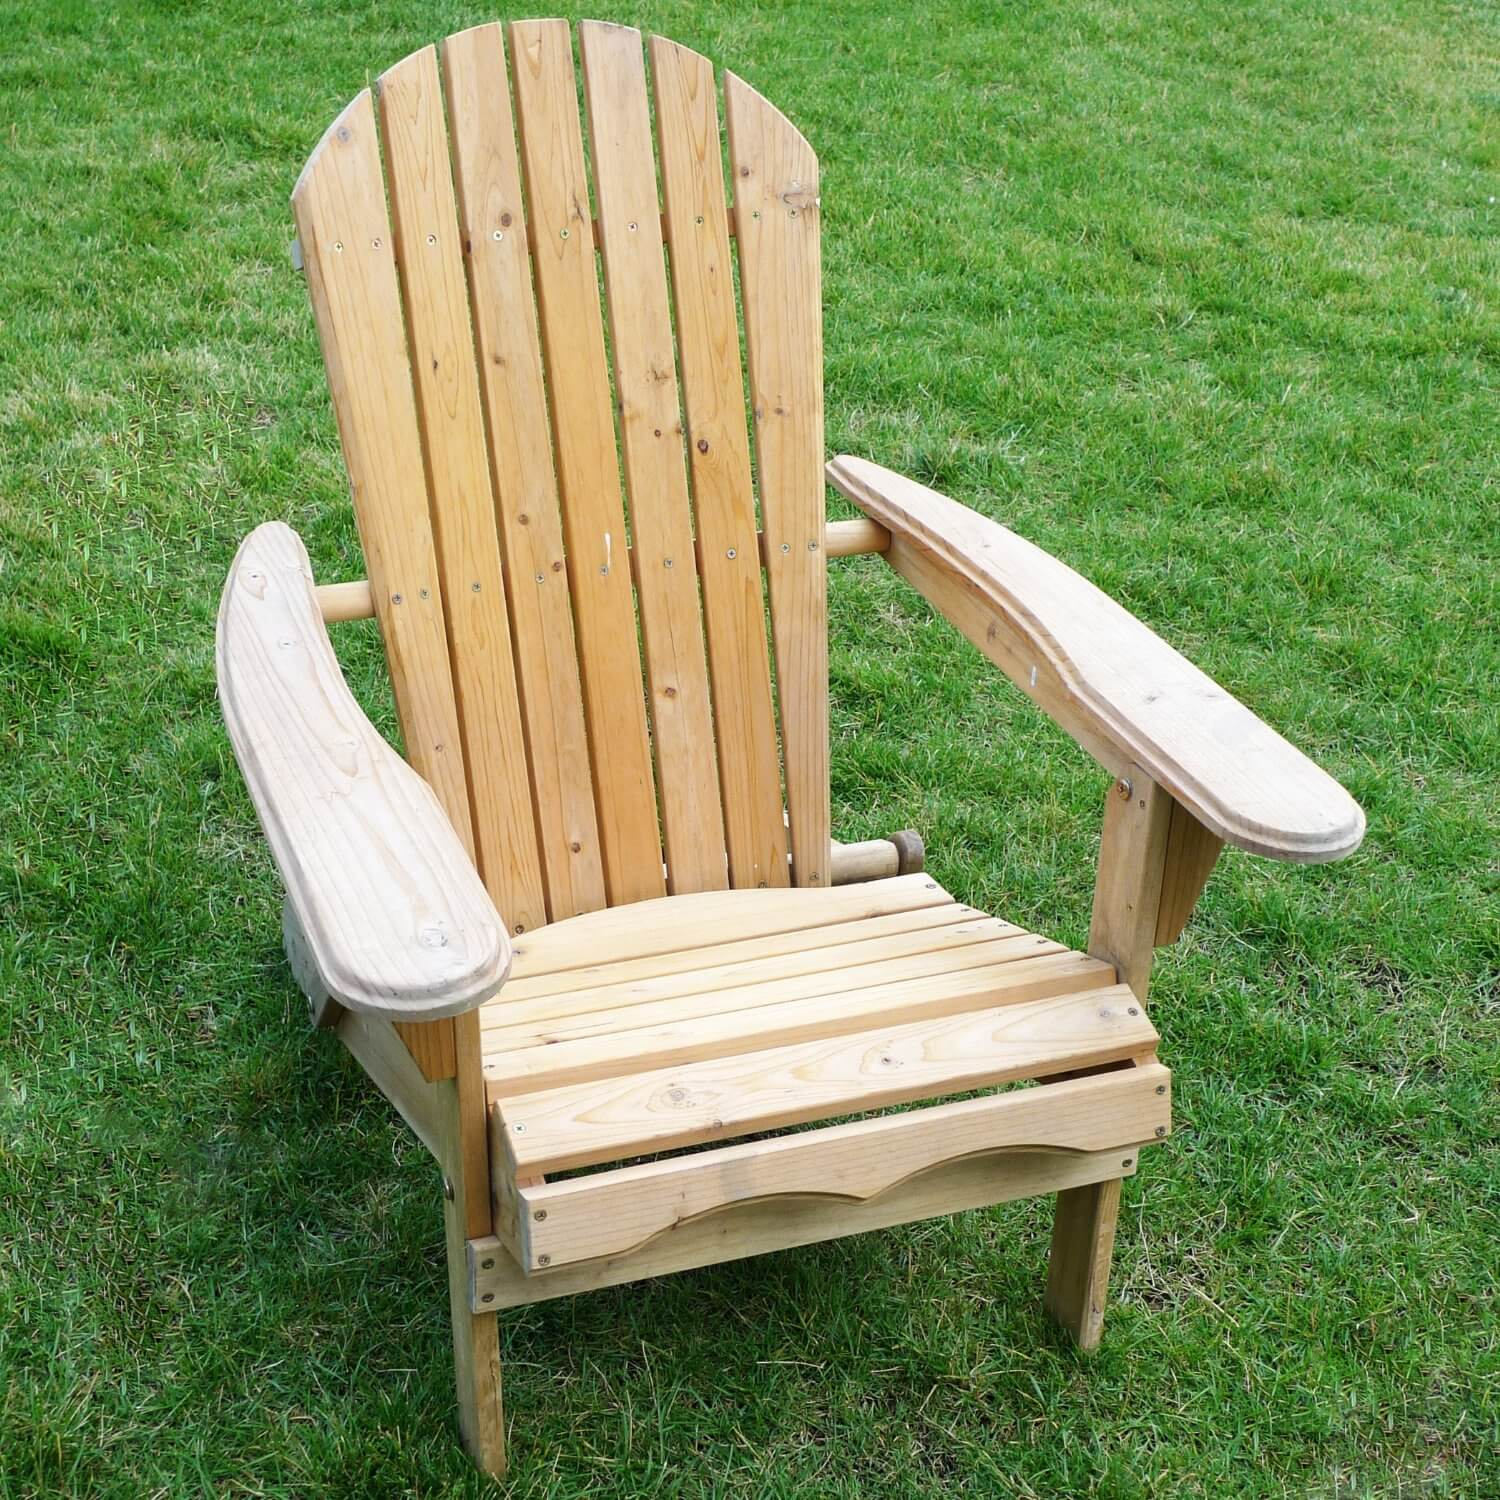 folding chair plans wood beach with wheels and canopy how to build a wooden pallet adirondack step by